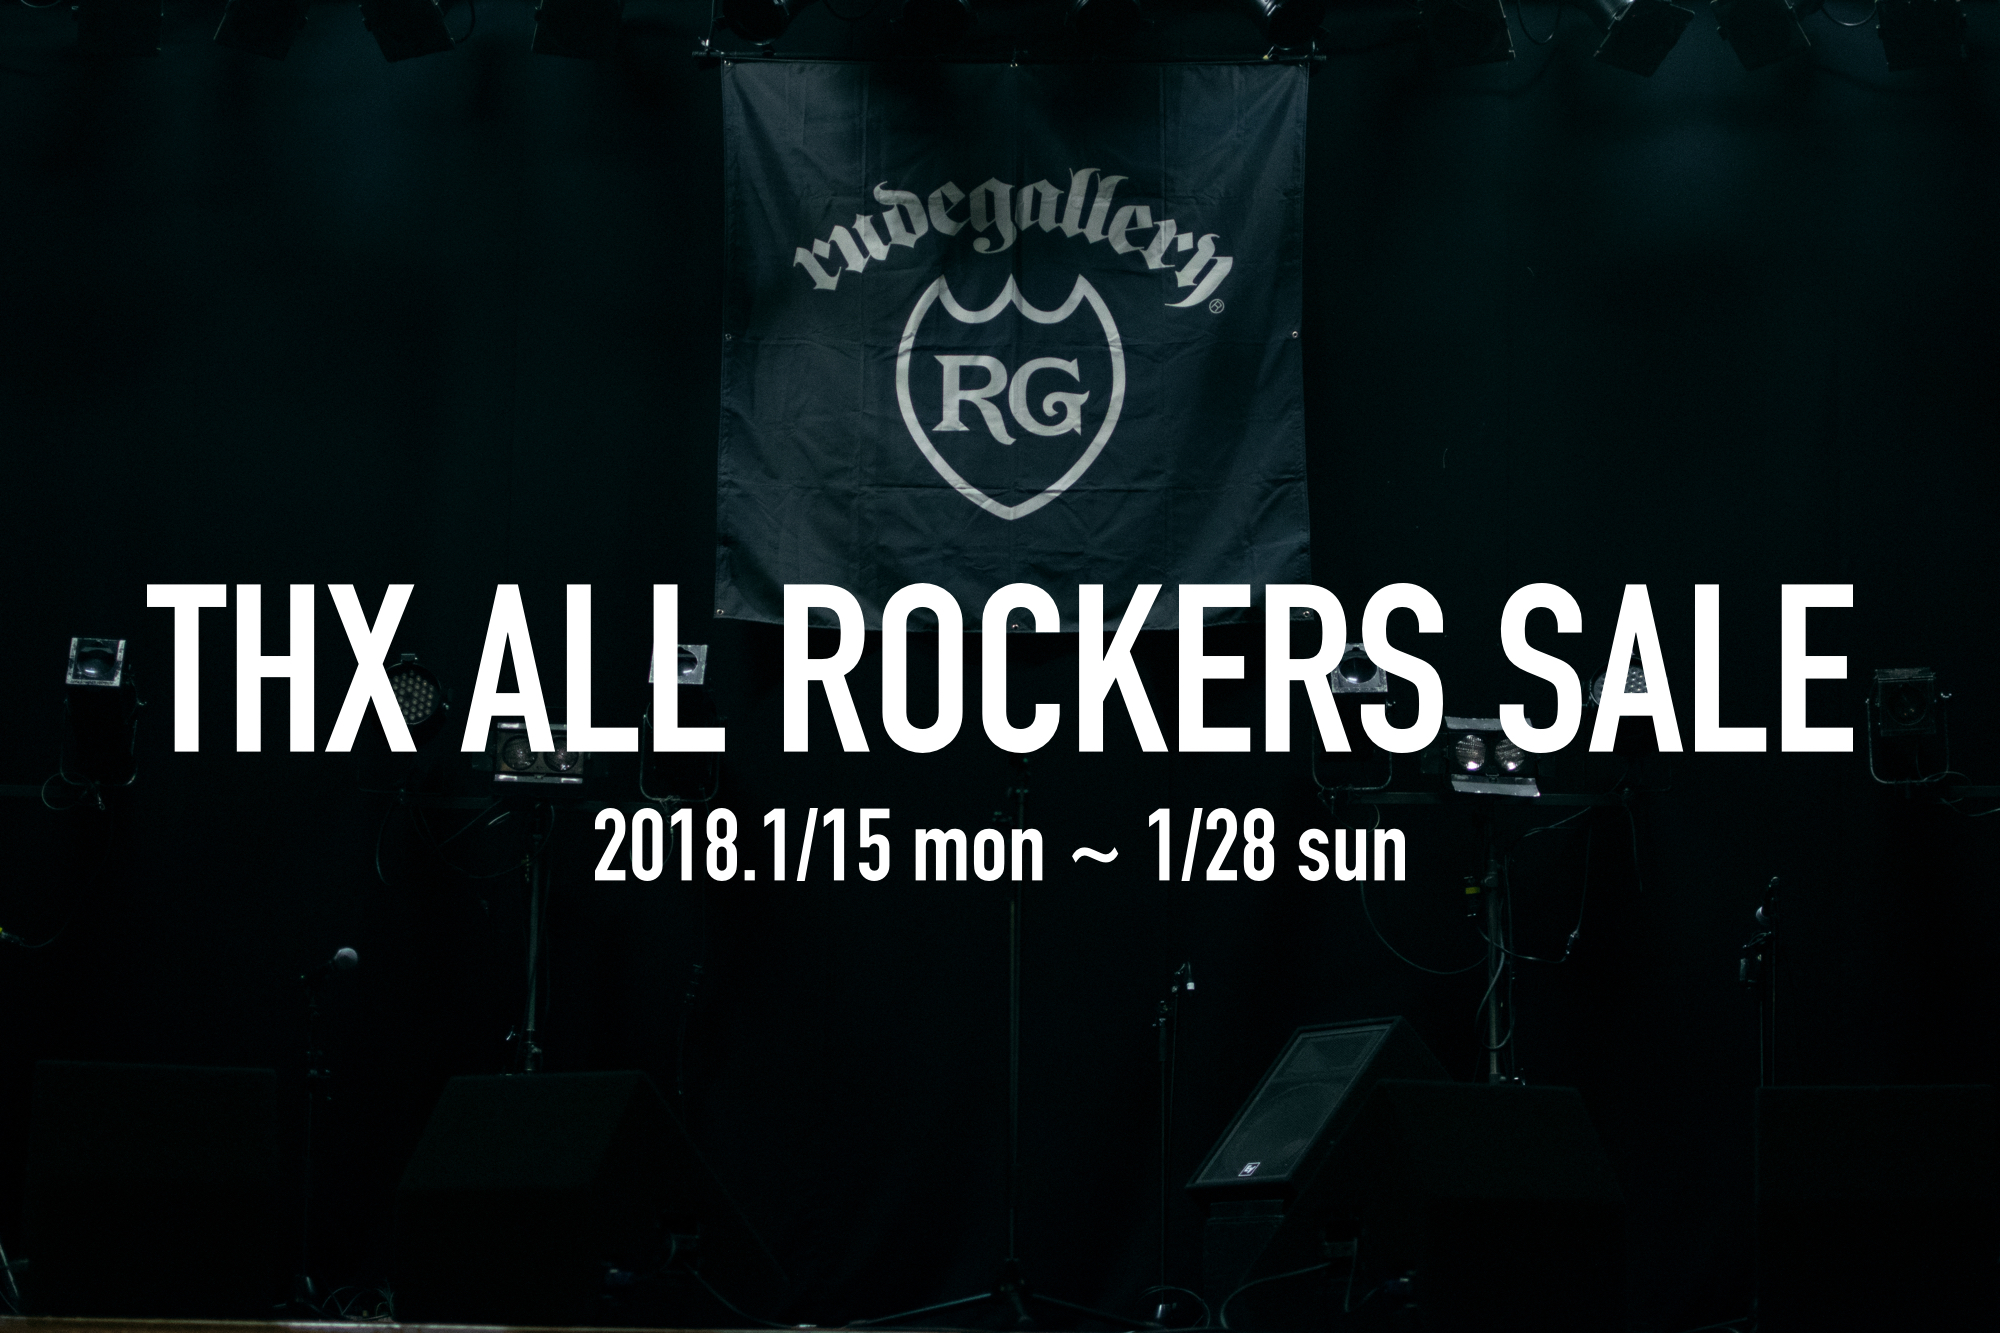 THX ALL ROCKERS SALE